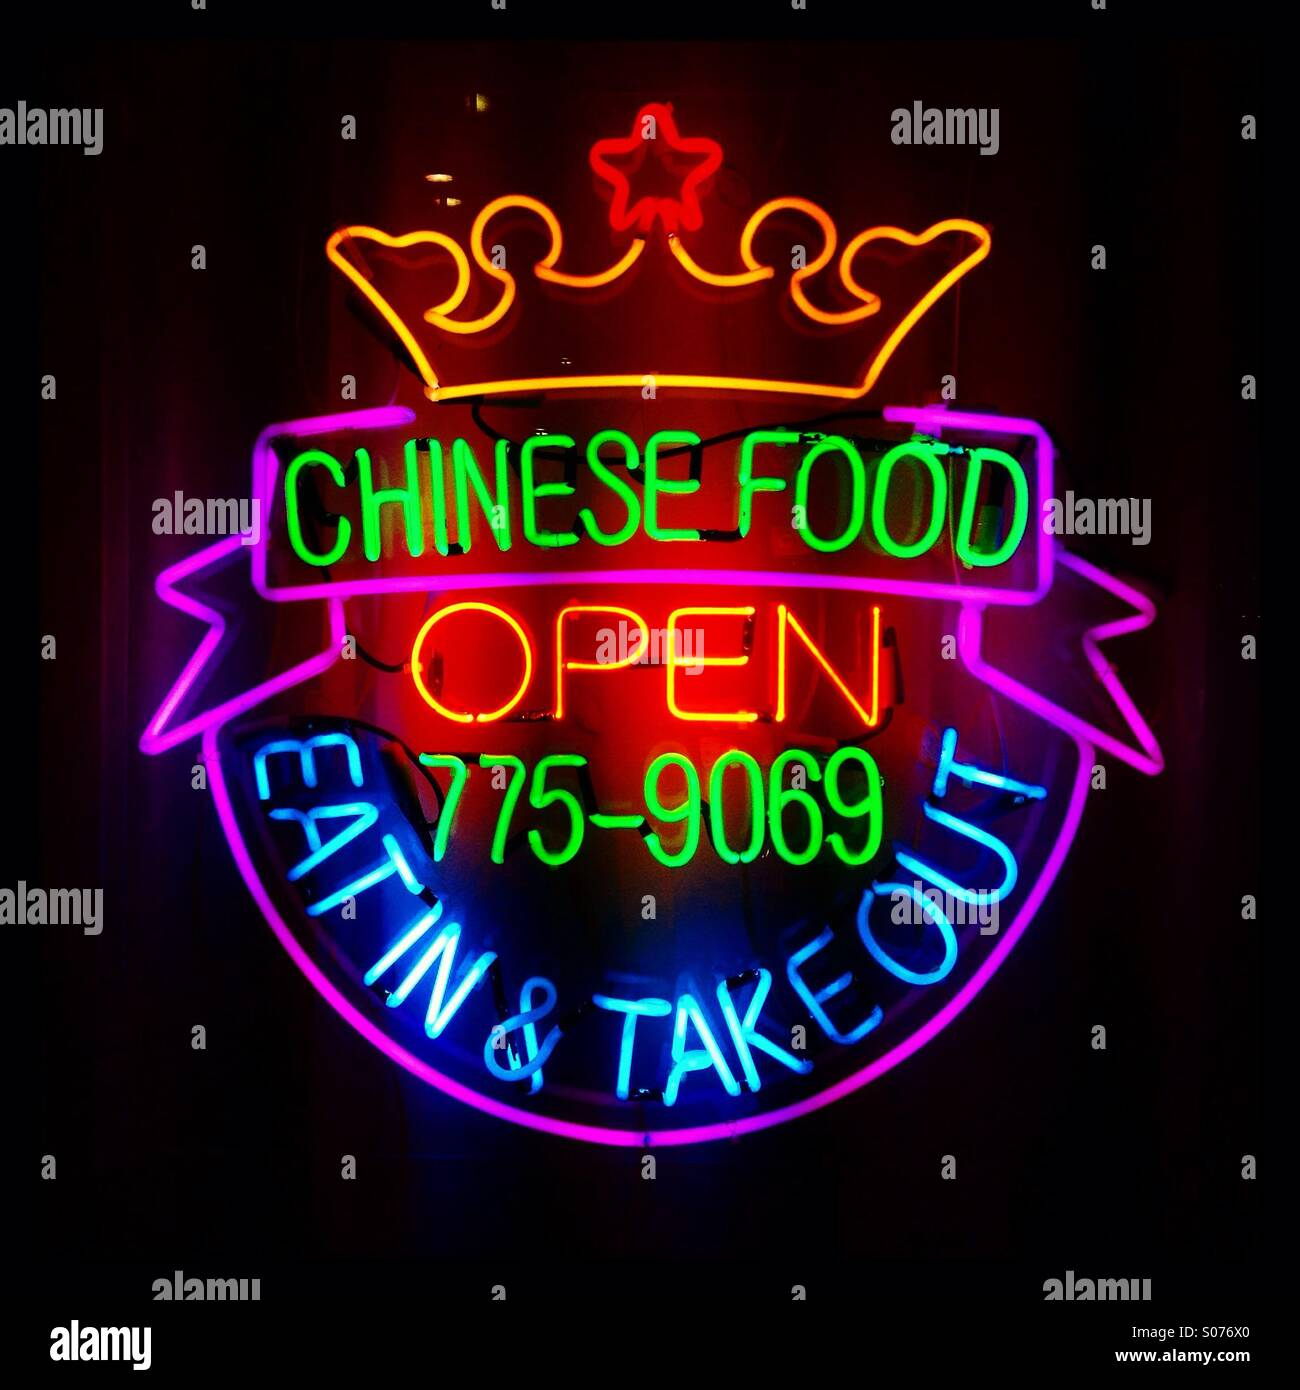 Chinese restaurant neon sign in color  Chinese food  Open  Eat in